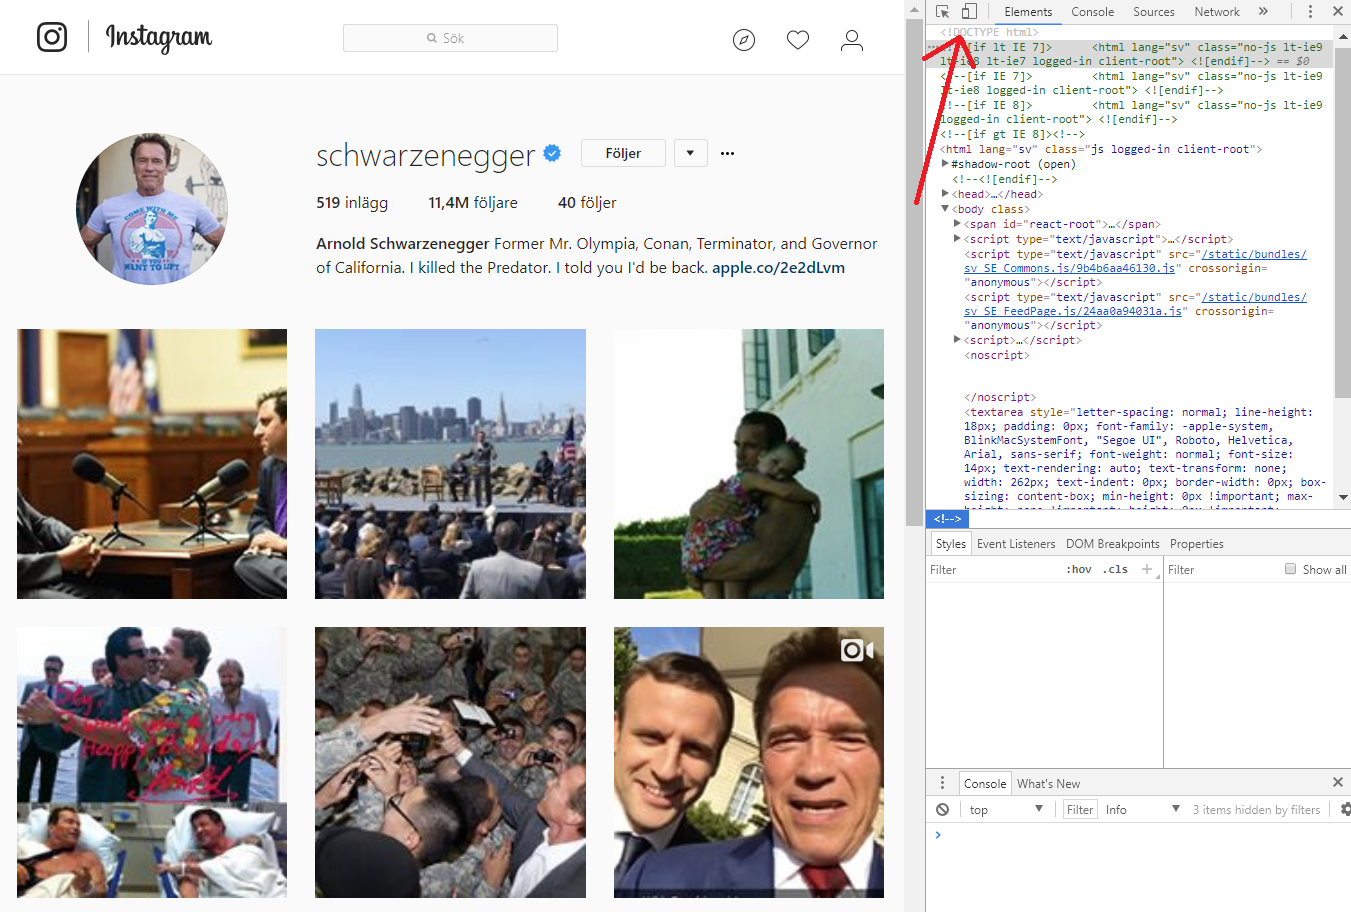 How to post on Instagram from a computer - Kristoffer